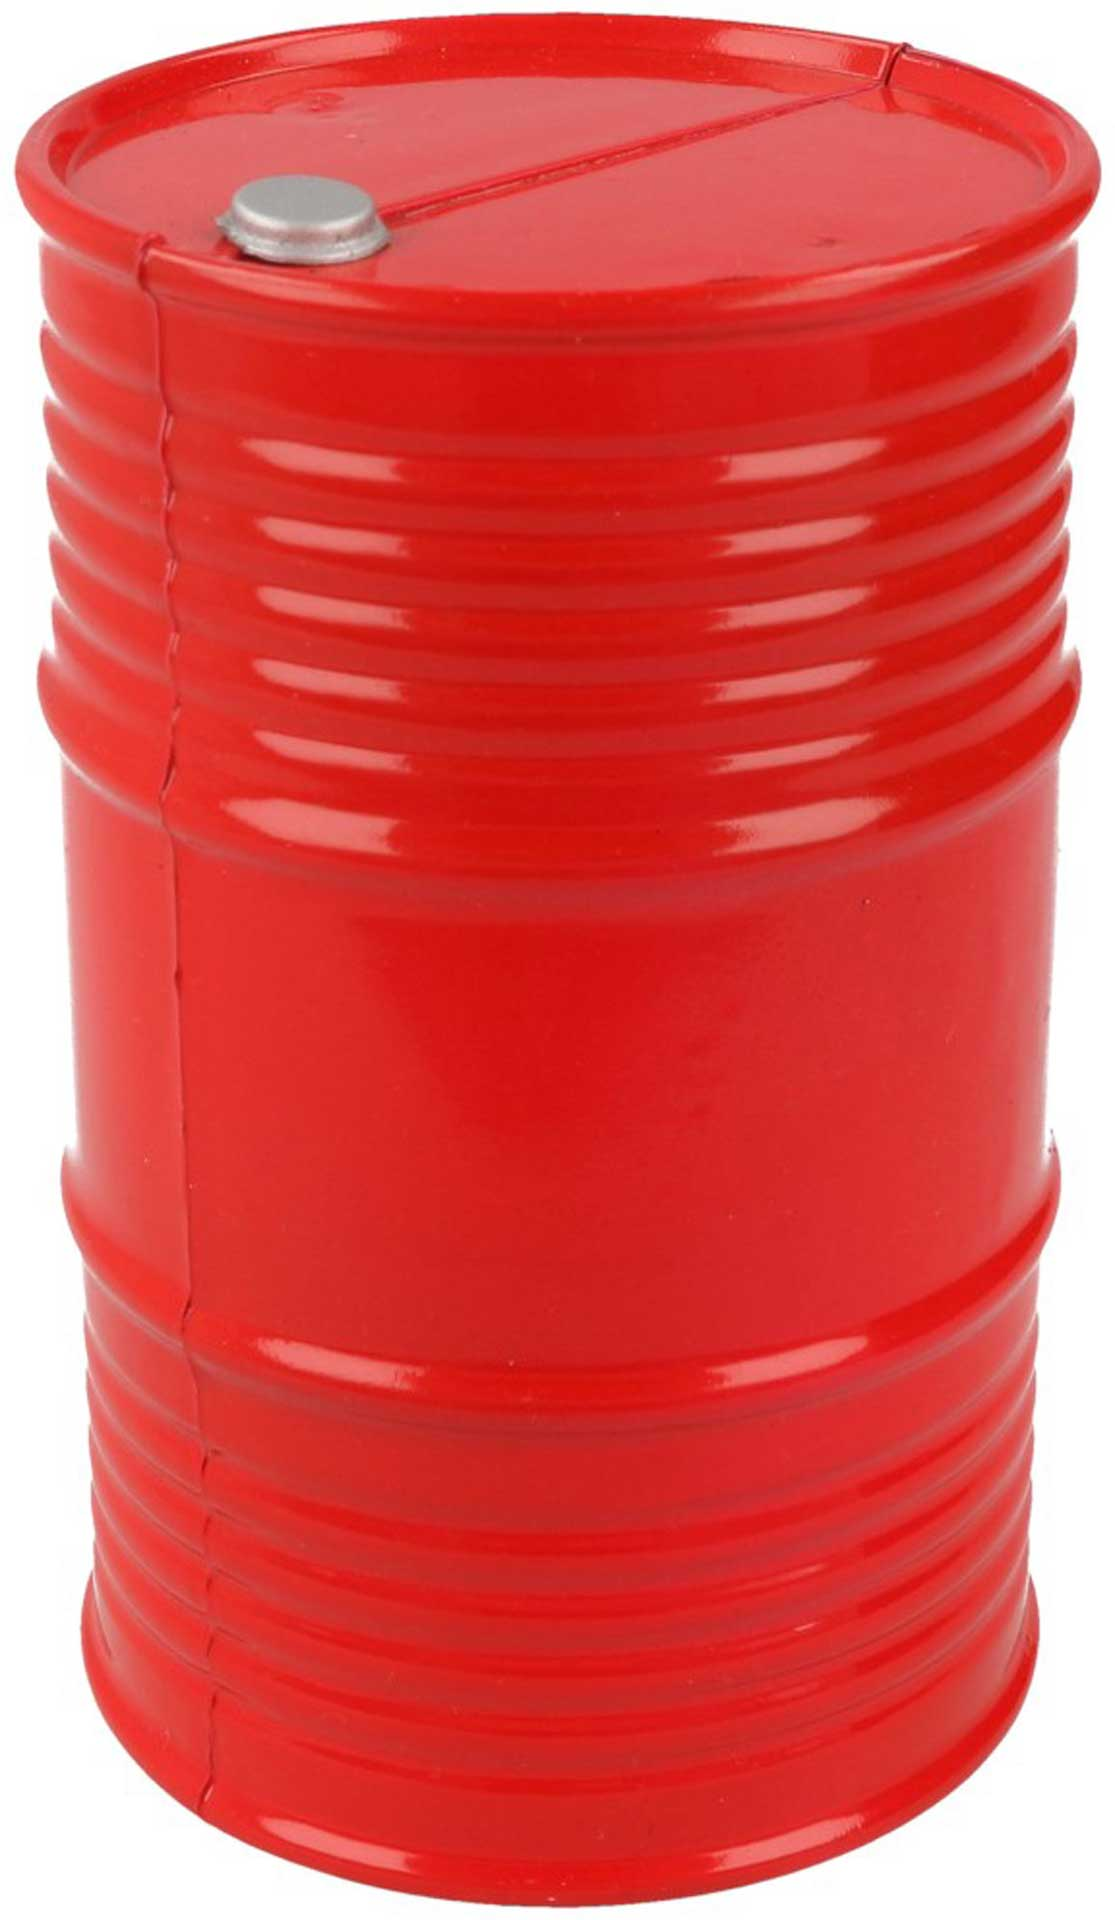 ROBITRONIC Oil Barrel Plastic Red 95x60mm